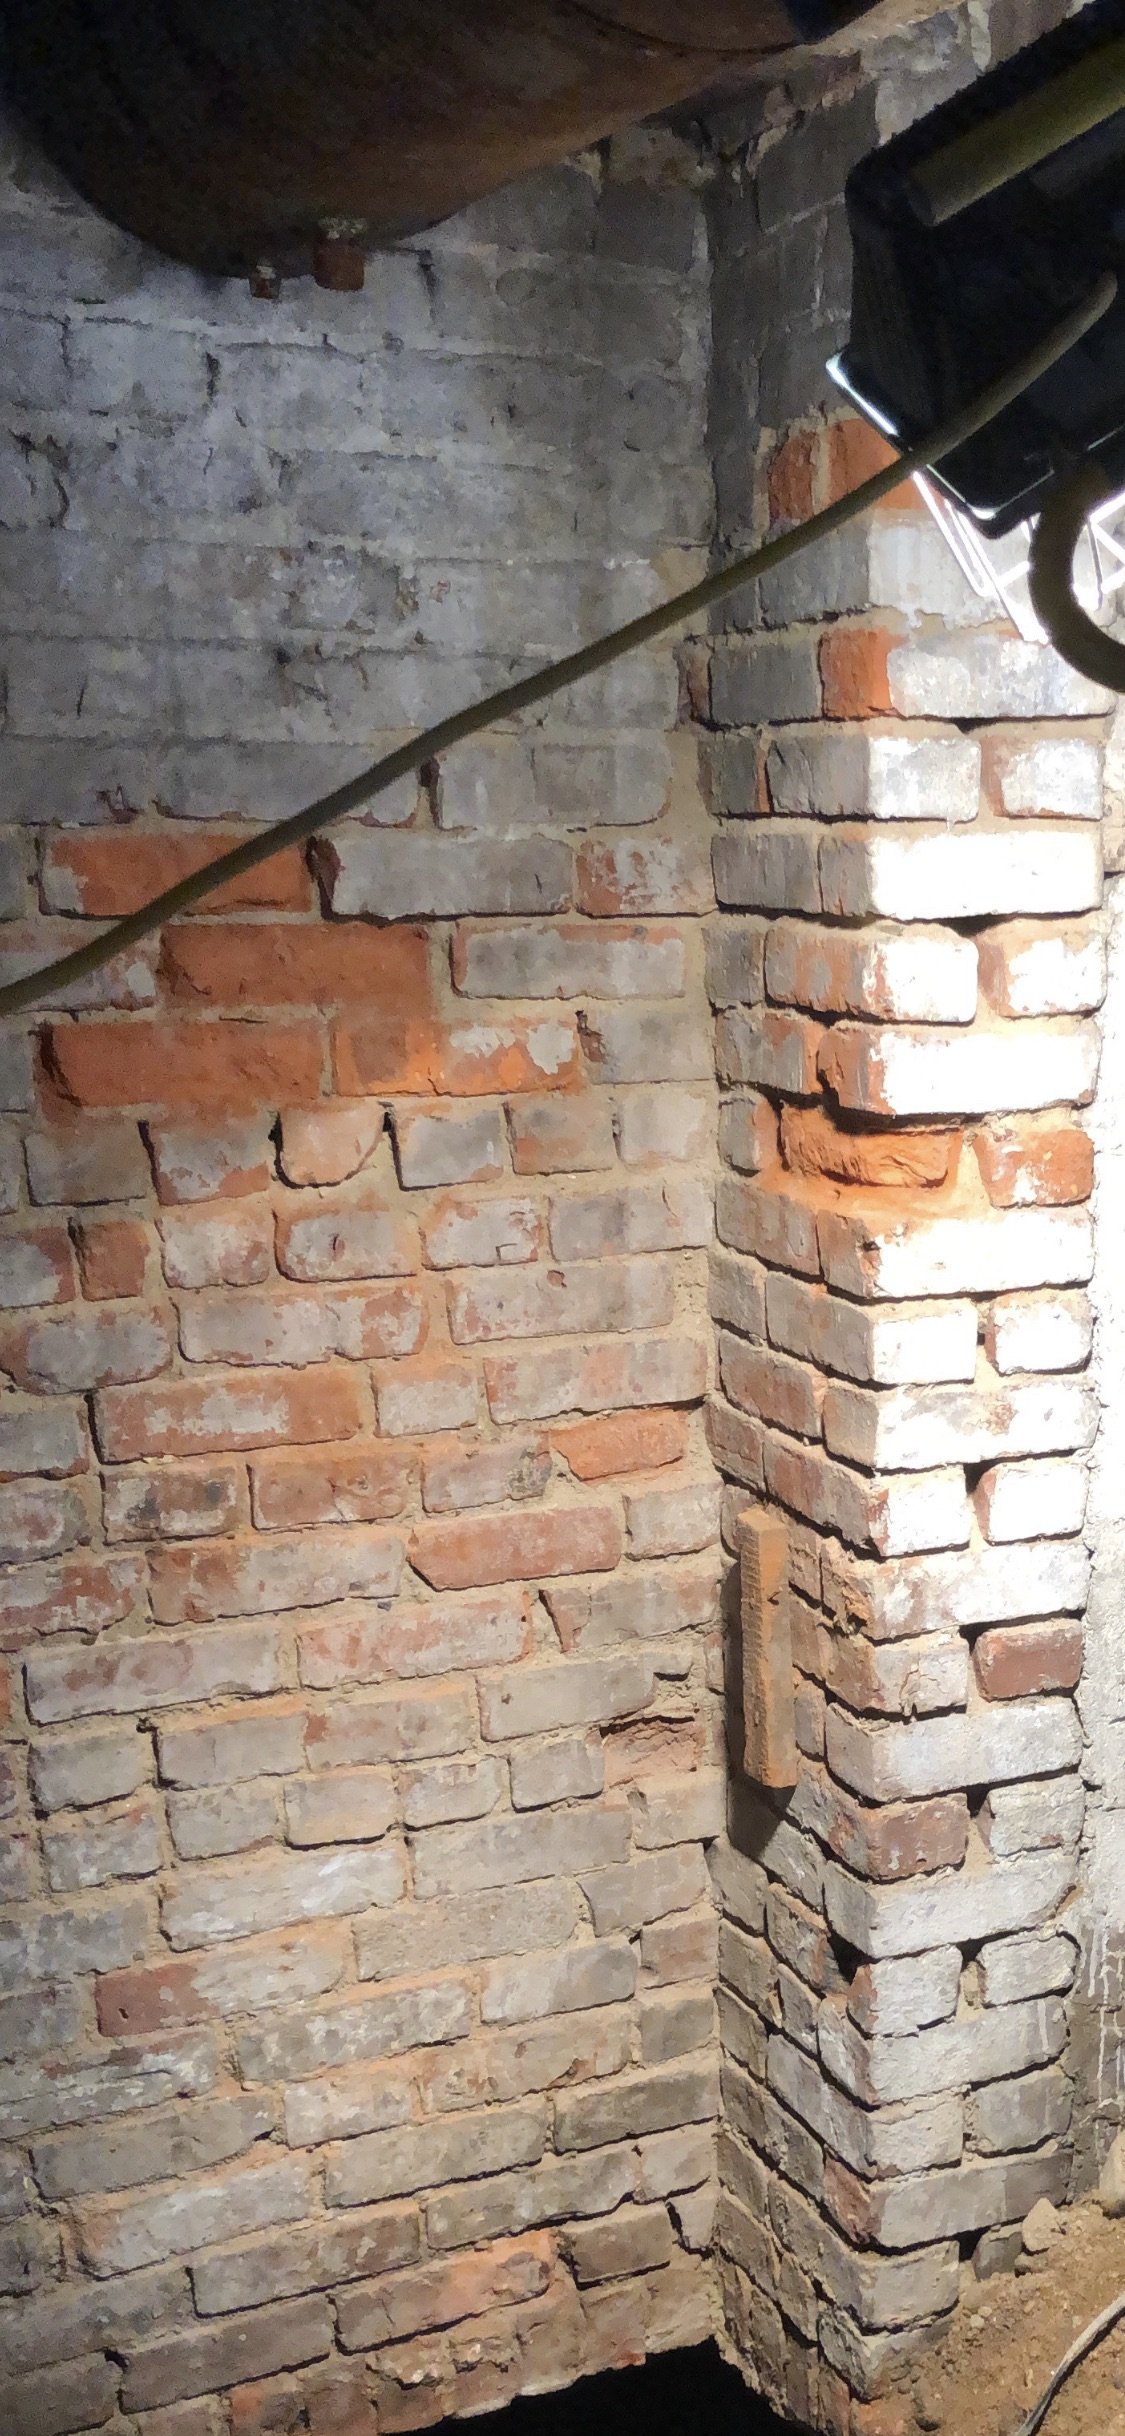 Historic Home Masonry Help Needed!-abf98ae2-3c46-4f51-8f94-b56d8d505cc3.jpeg